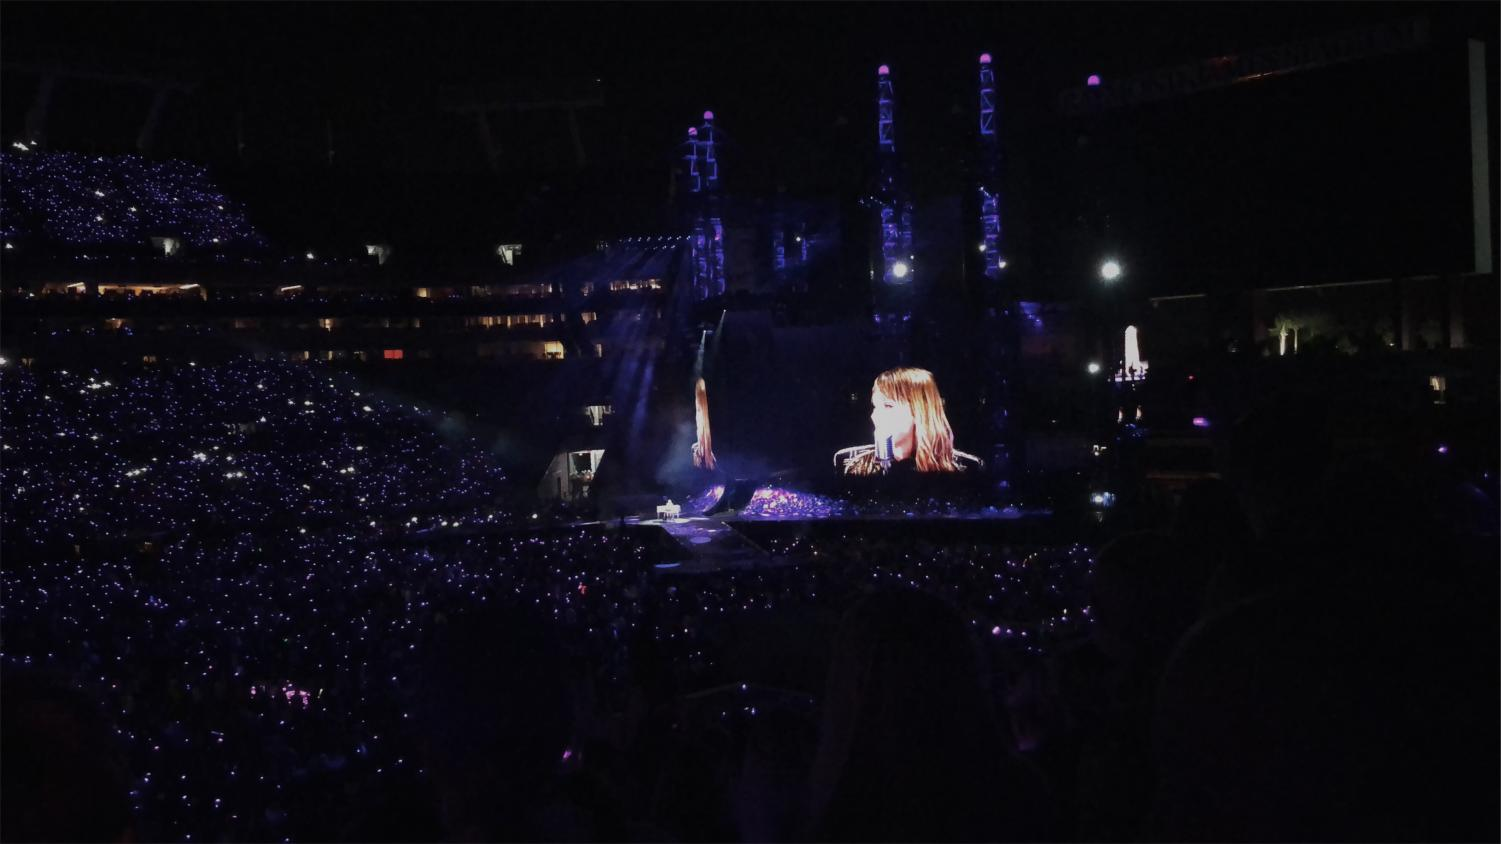 Fans lighting up the night as Swift takes the stage